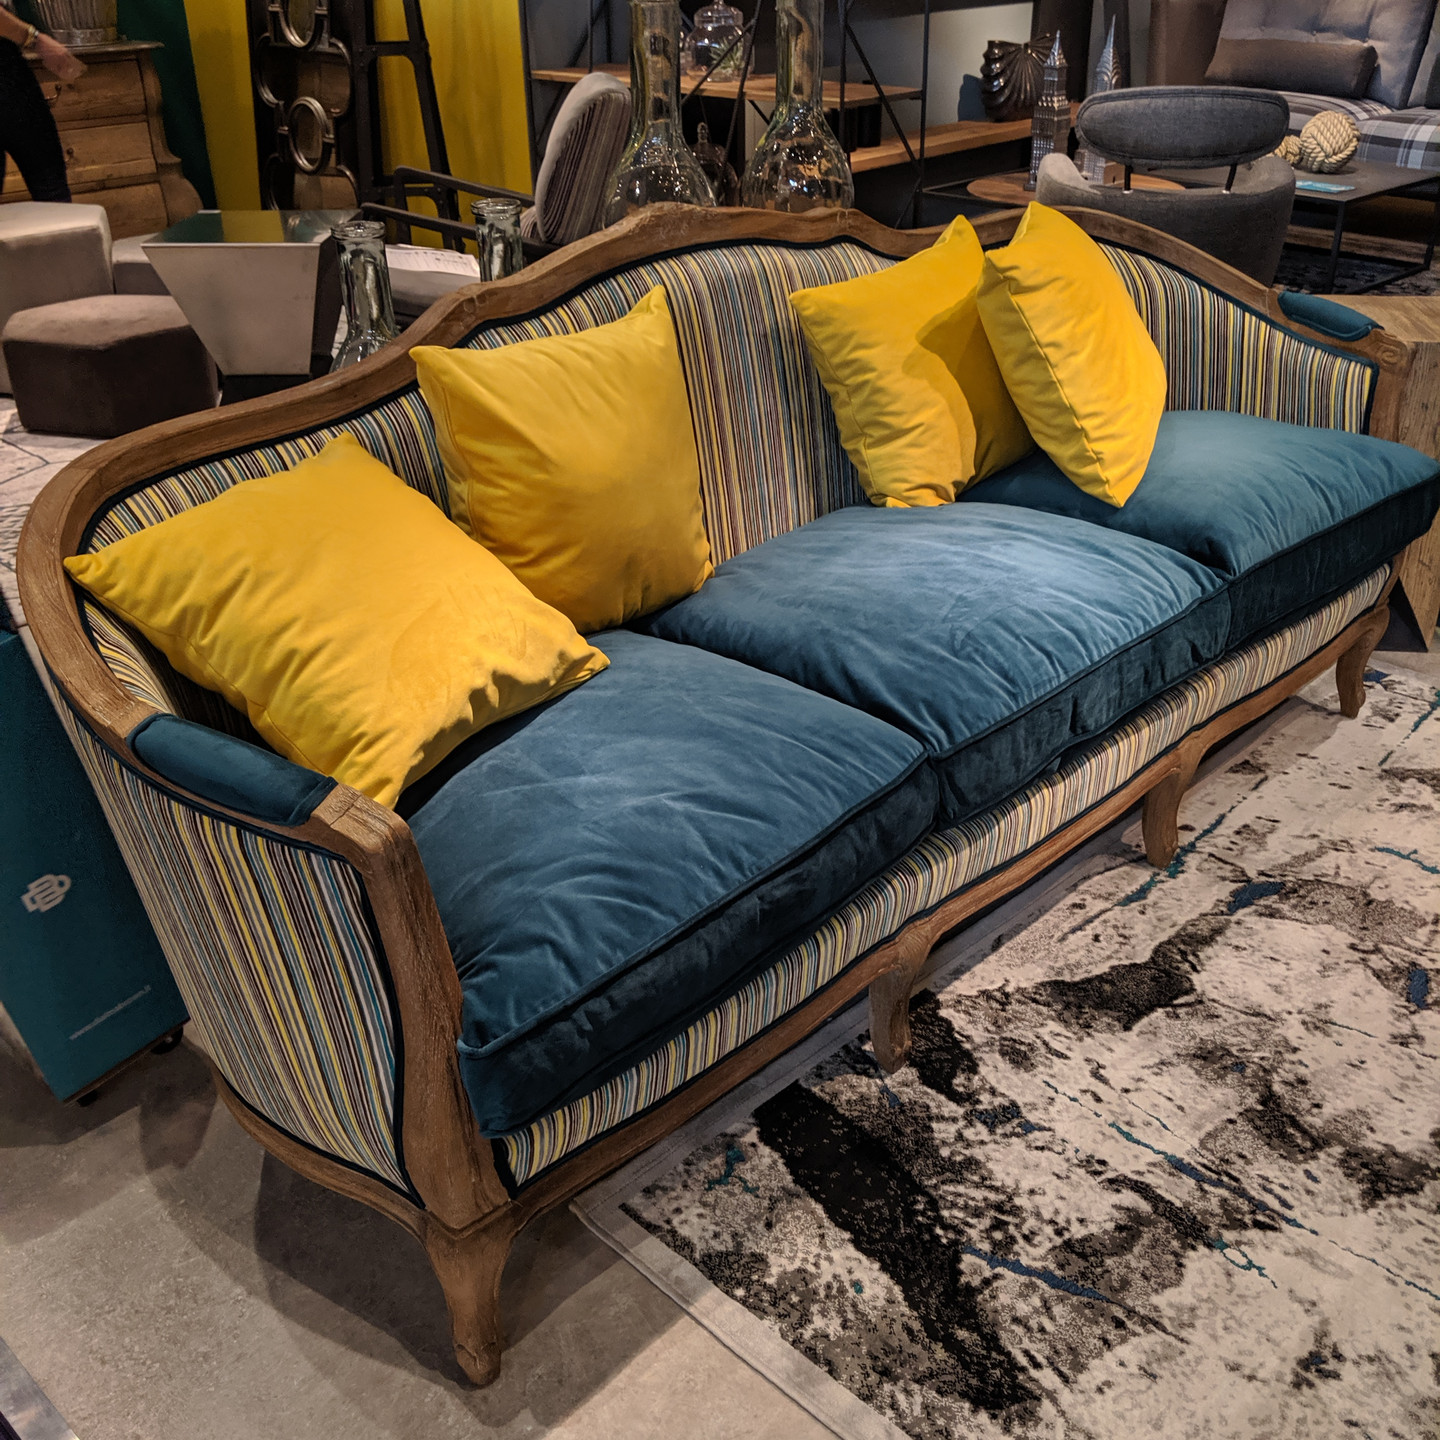 Antique Inspired Sofa with Striped Fabric, Turquoise Velvet Cushions, Mustard Yellow Throw Pillows